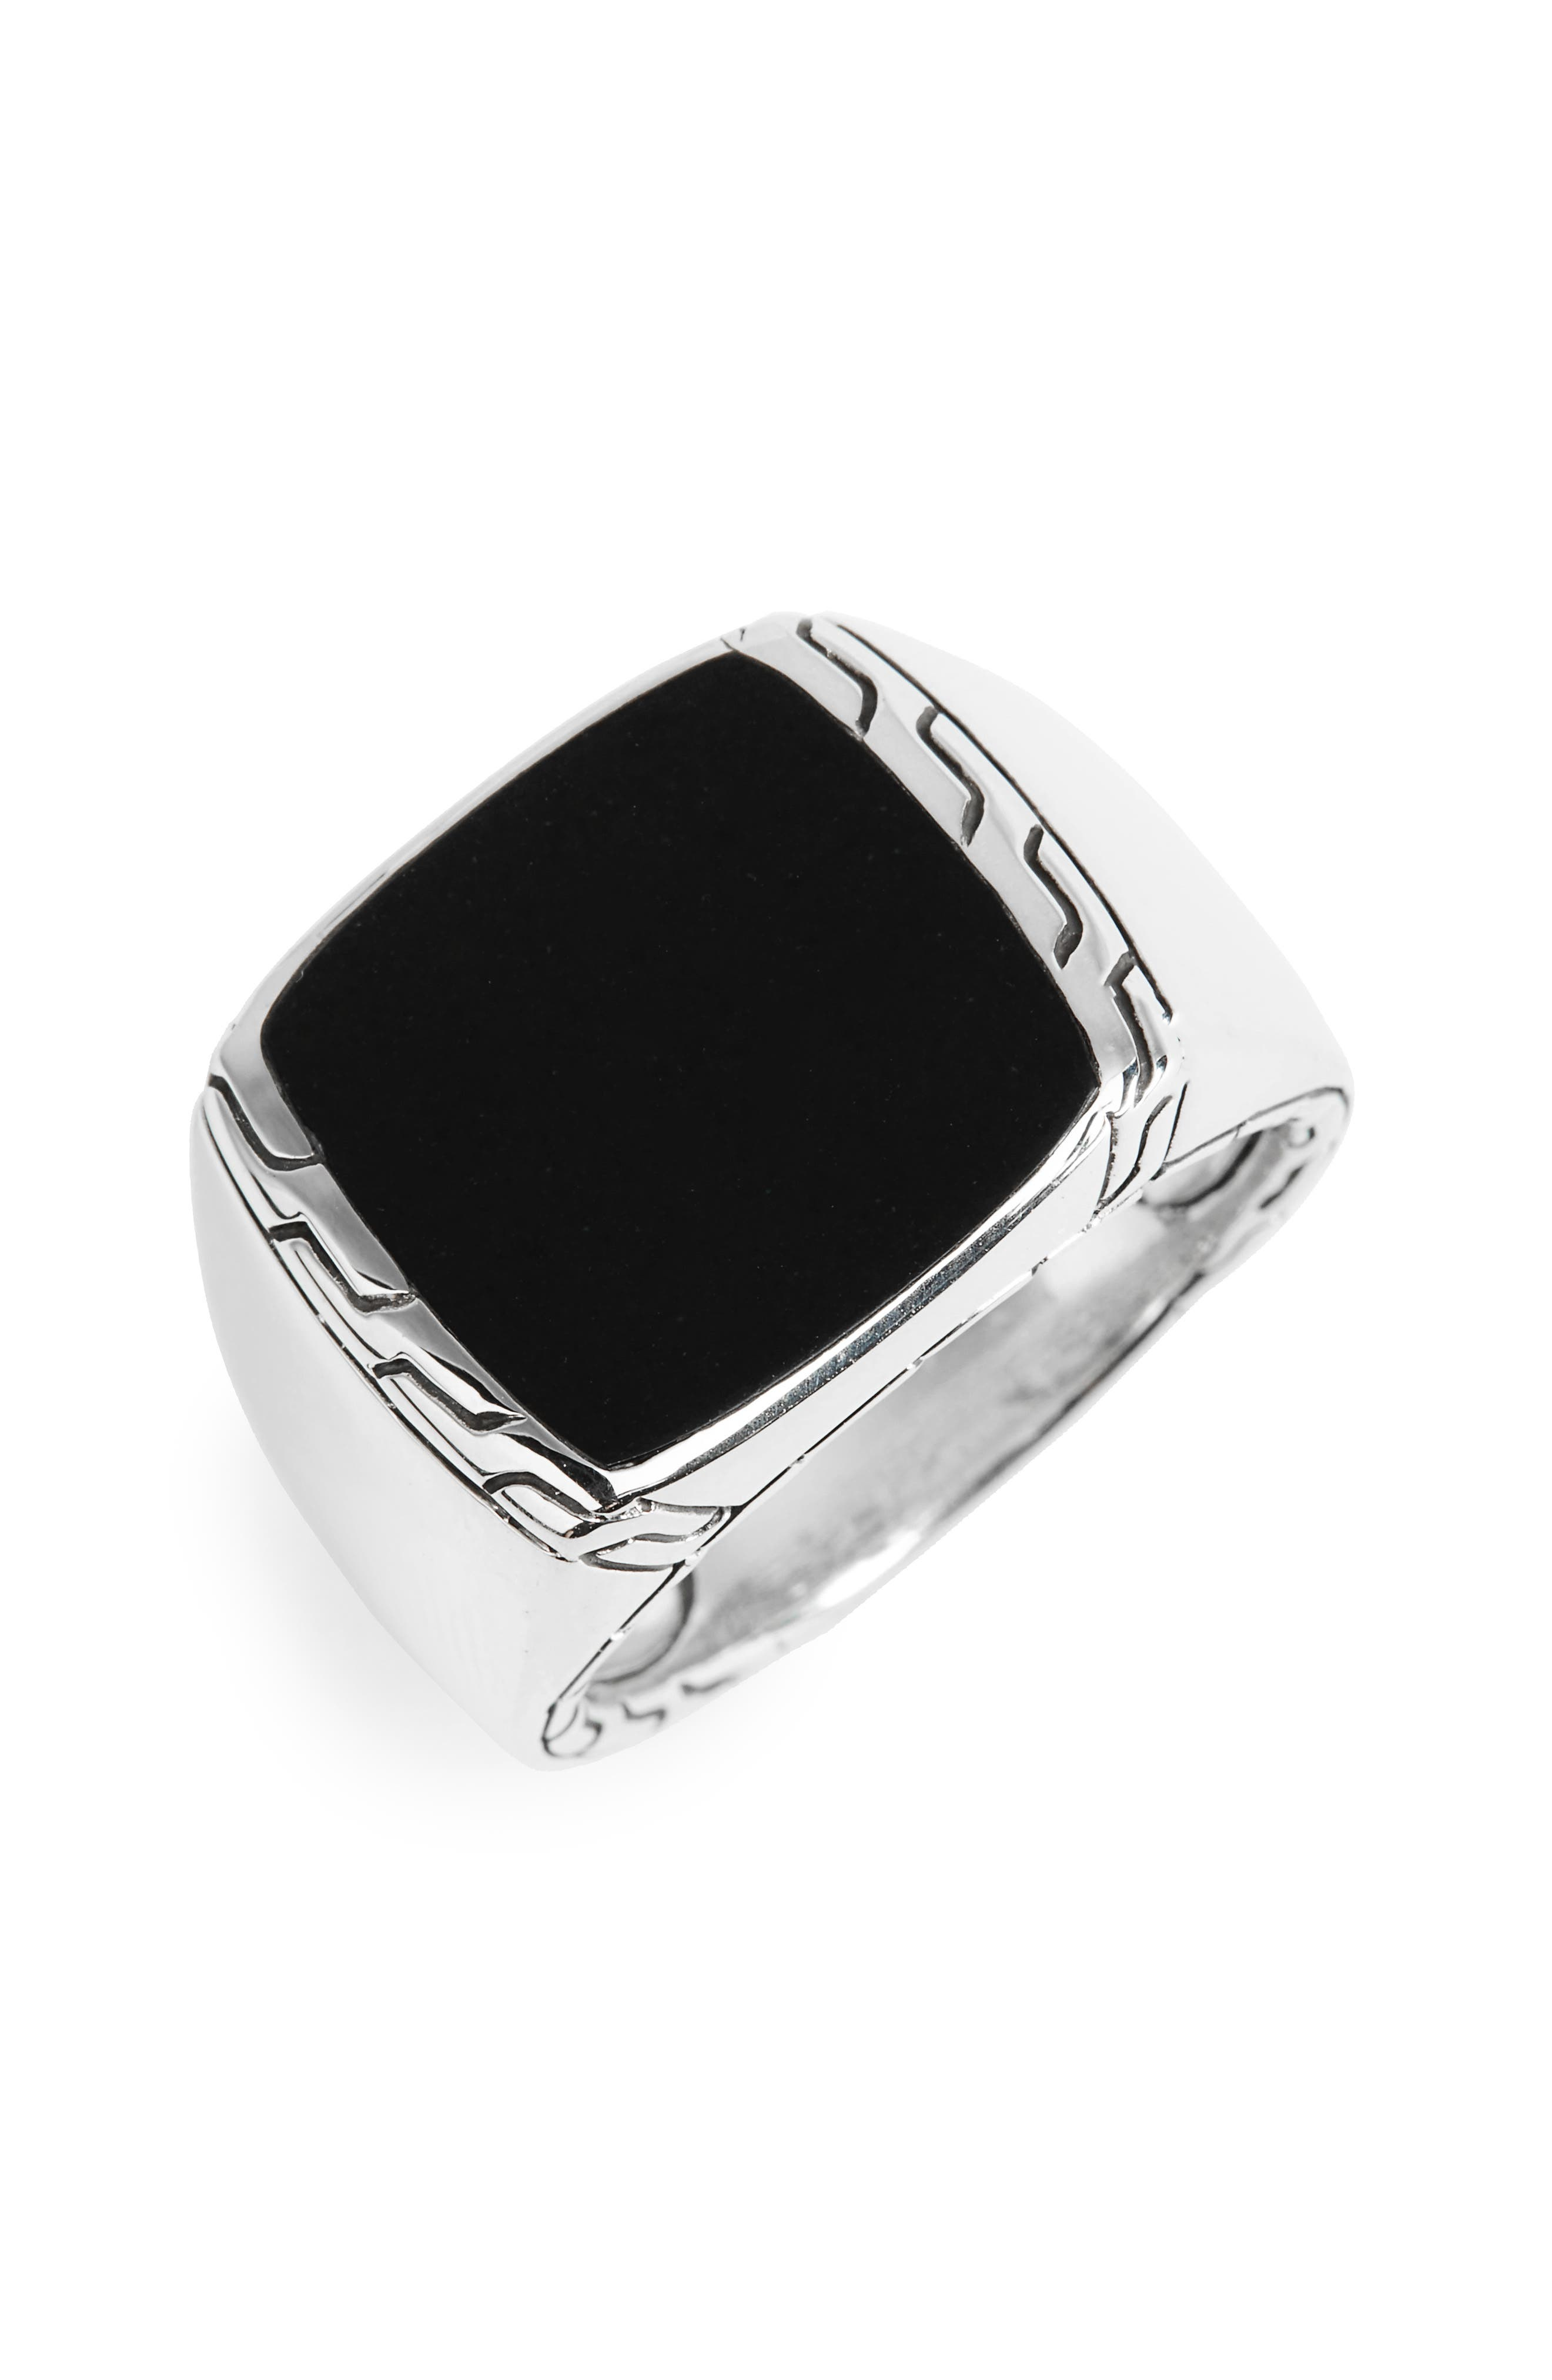 Alternate Image 1 Selected - John Hardy Classic Chain Signet Ring